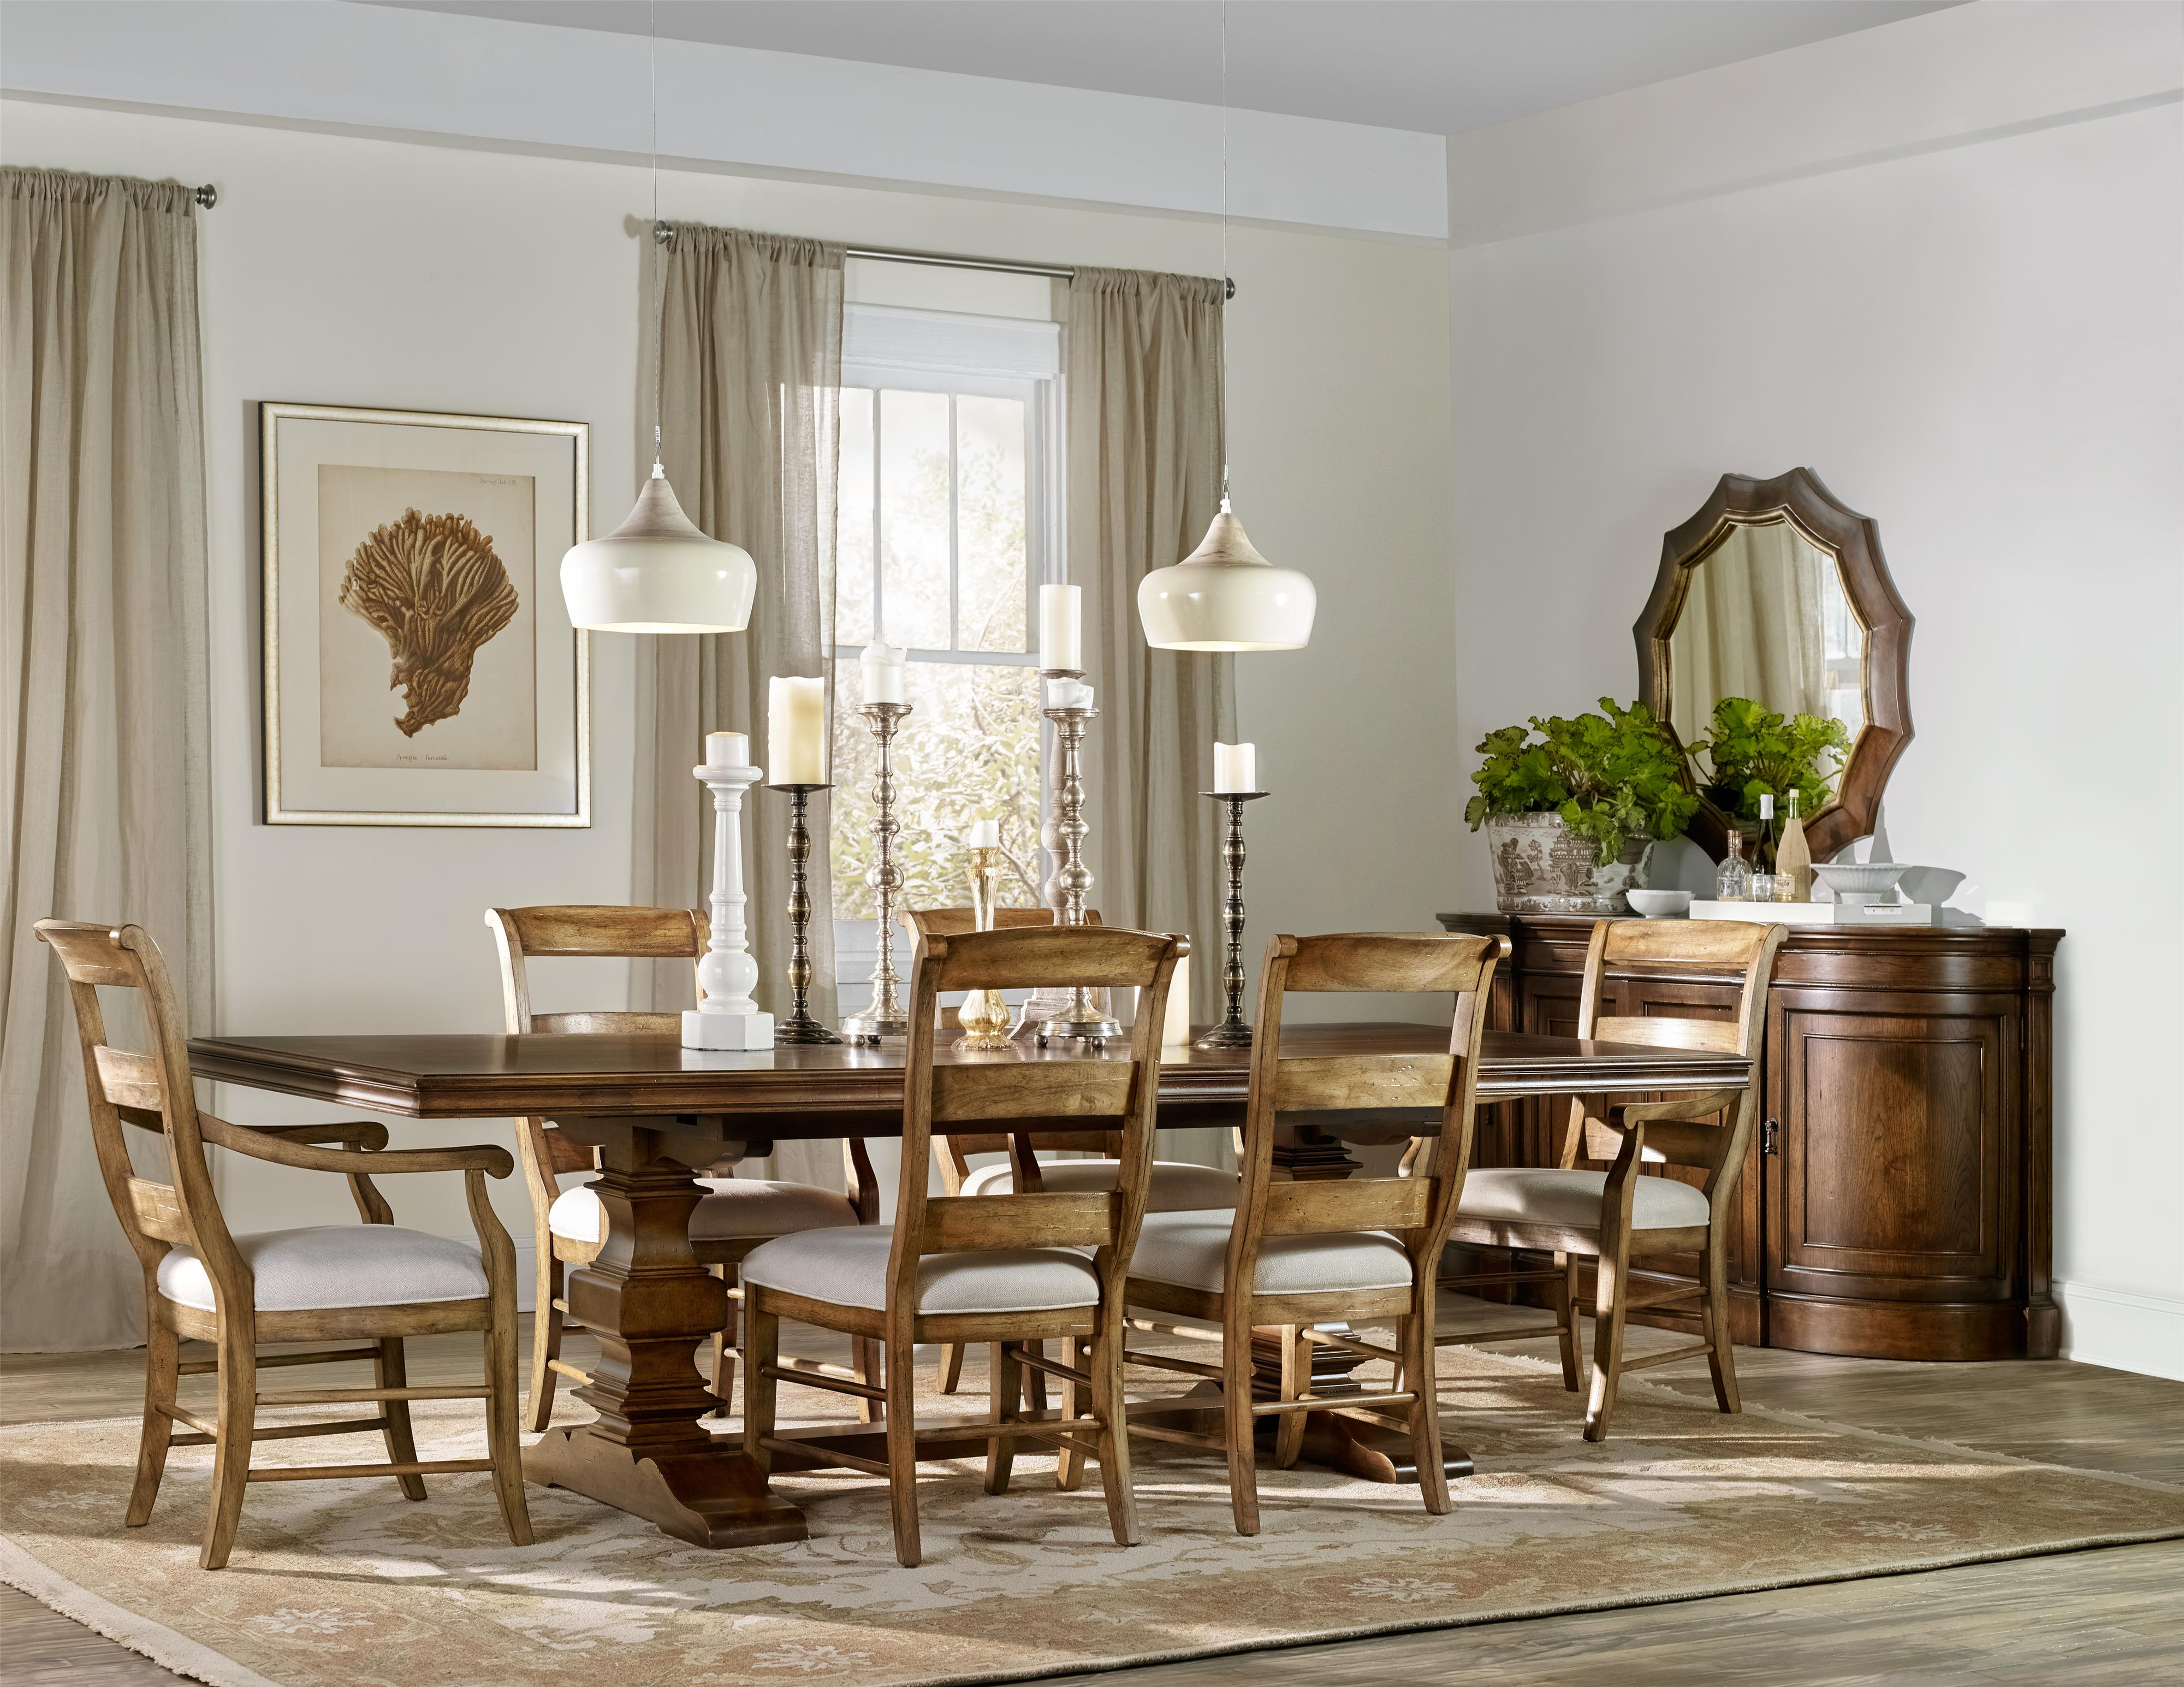 Hamilton Home Sentinel: Pecan Formal Dining Room Group - Item Number: 5447 Dining Room Group 2